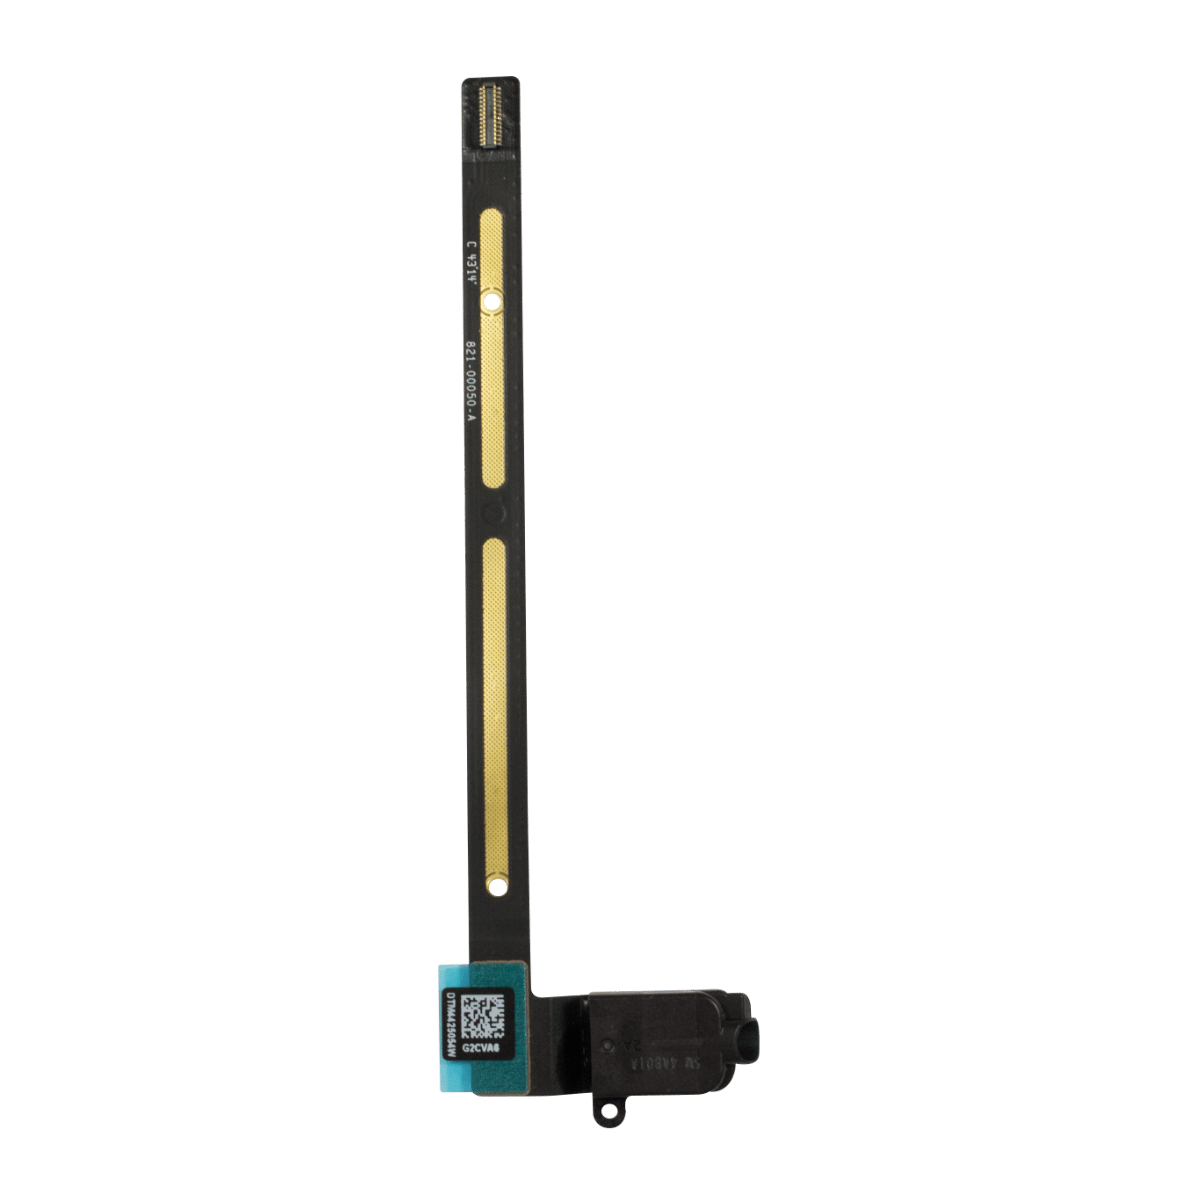 iPad Air 2 Headphone Jack Flex Cable Replacement